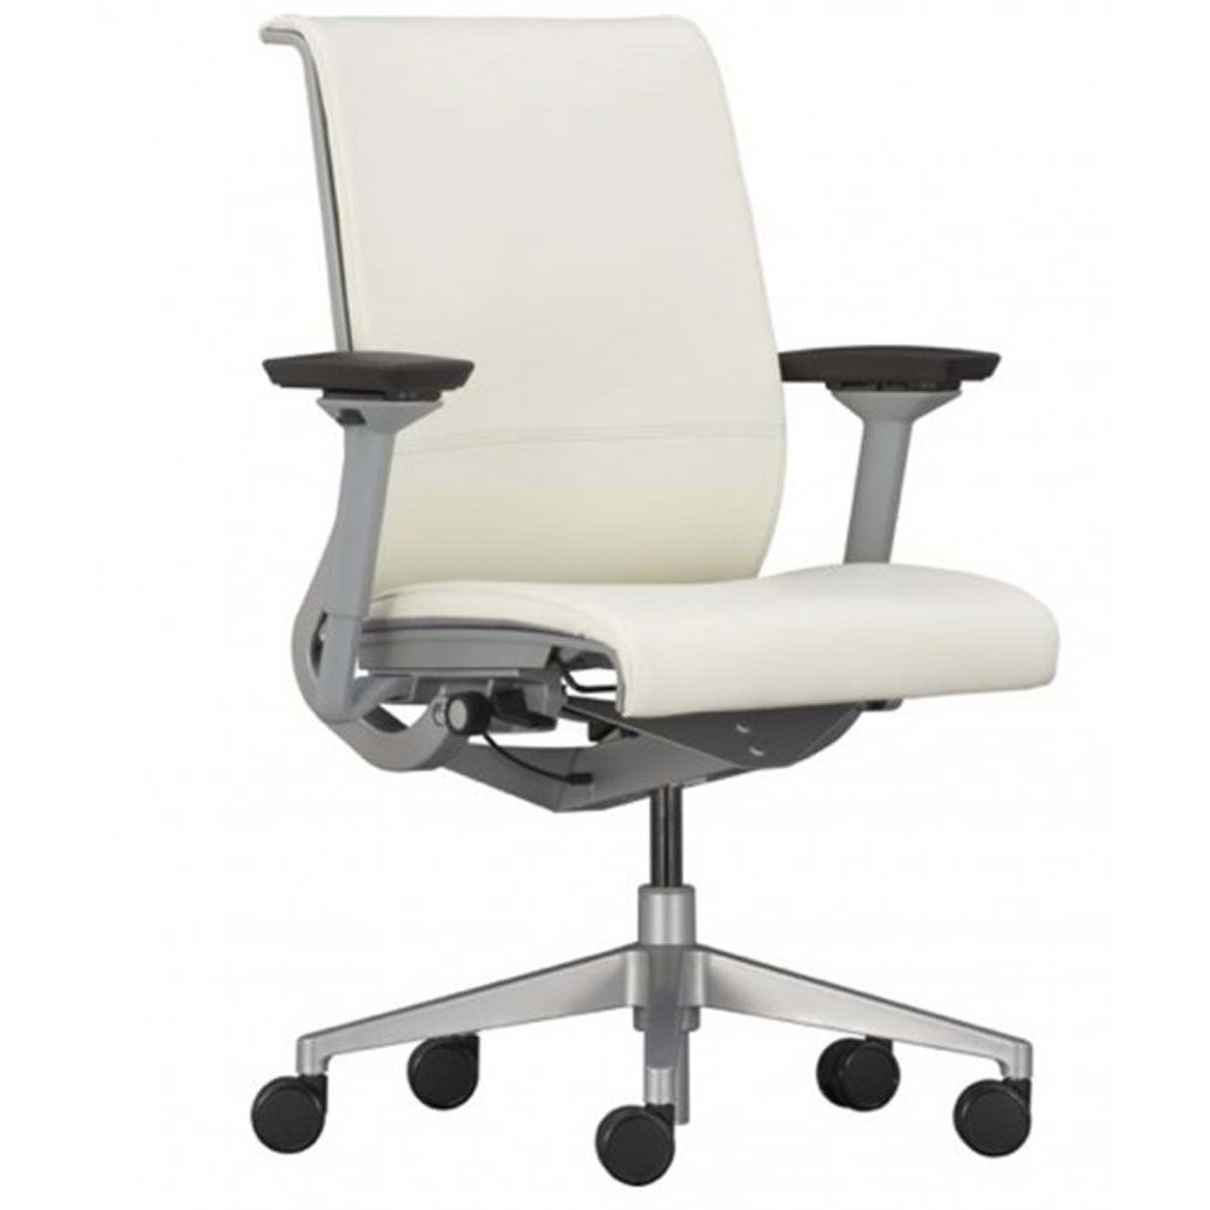 Office Chair White White Leather Desk Chair Office Furniture